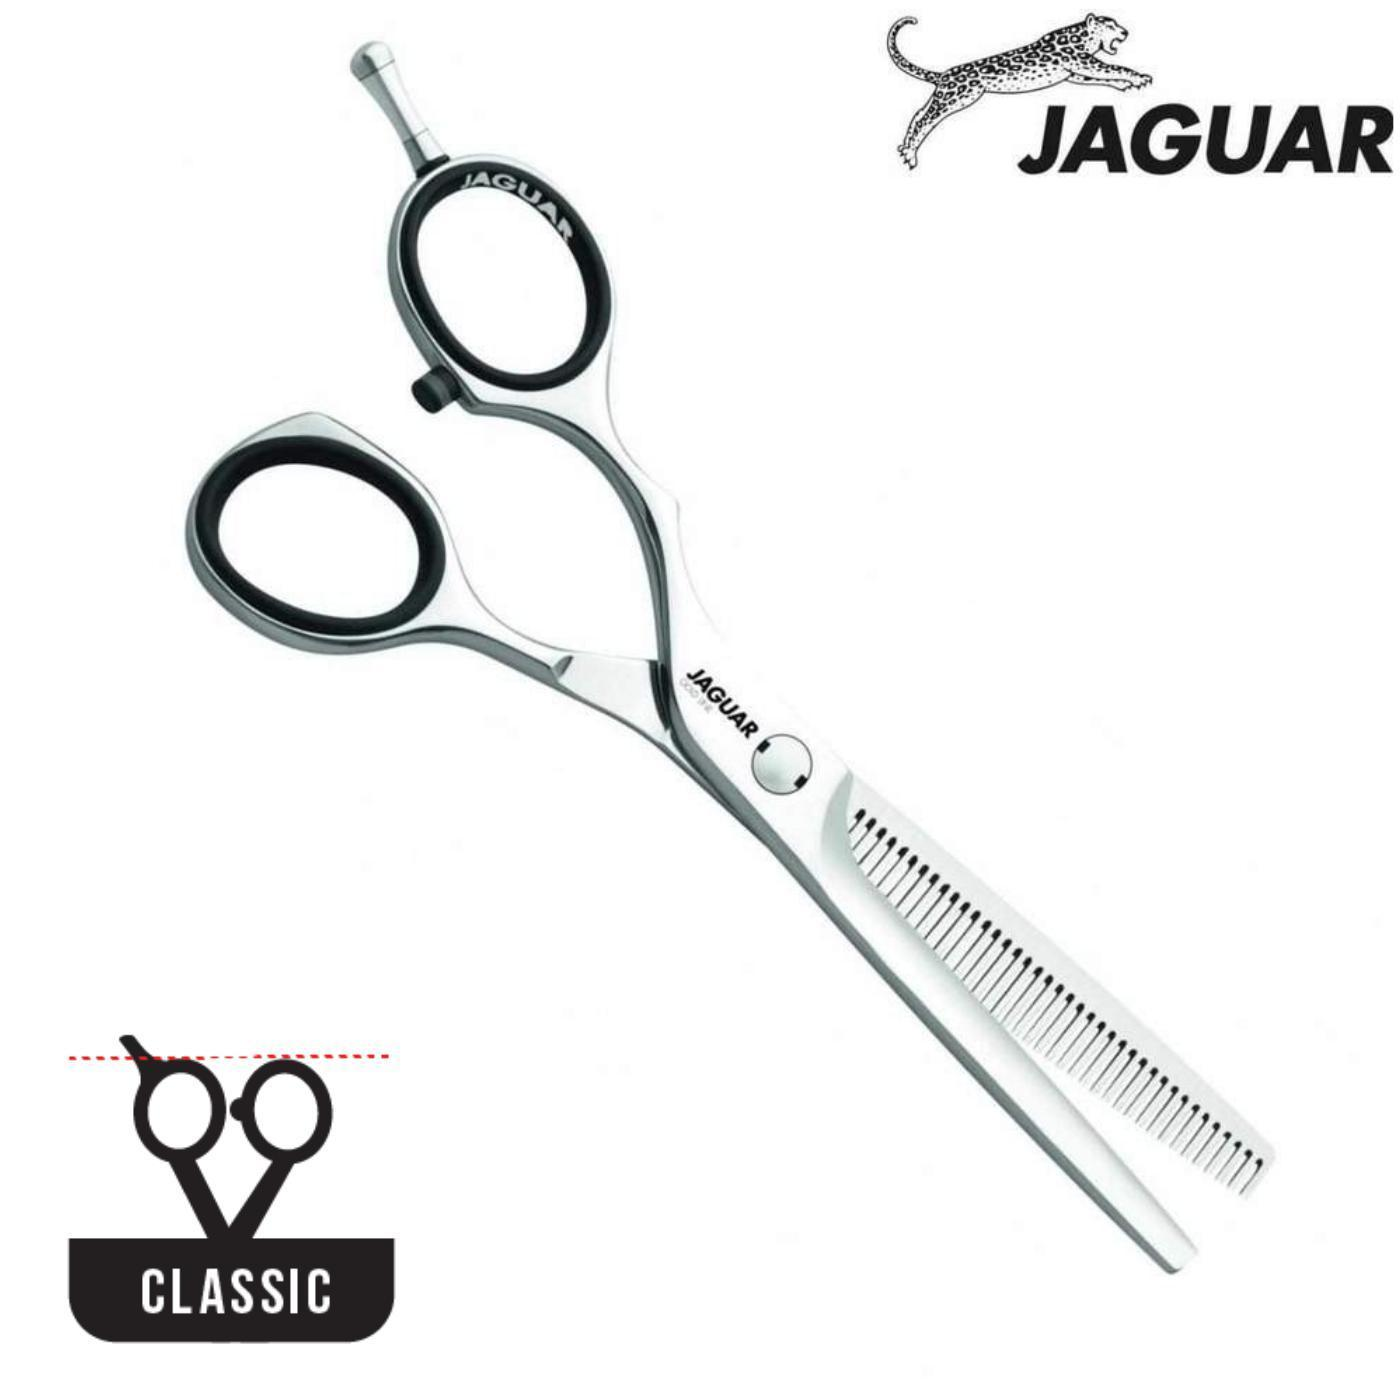 Jaguar Gold Line Diamond Hair Thinning Scissors - Japan Scissors